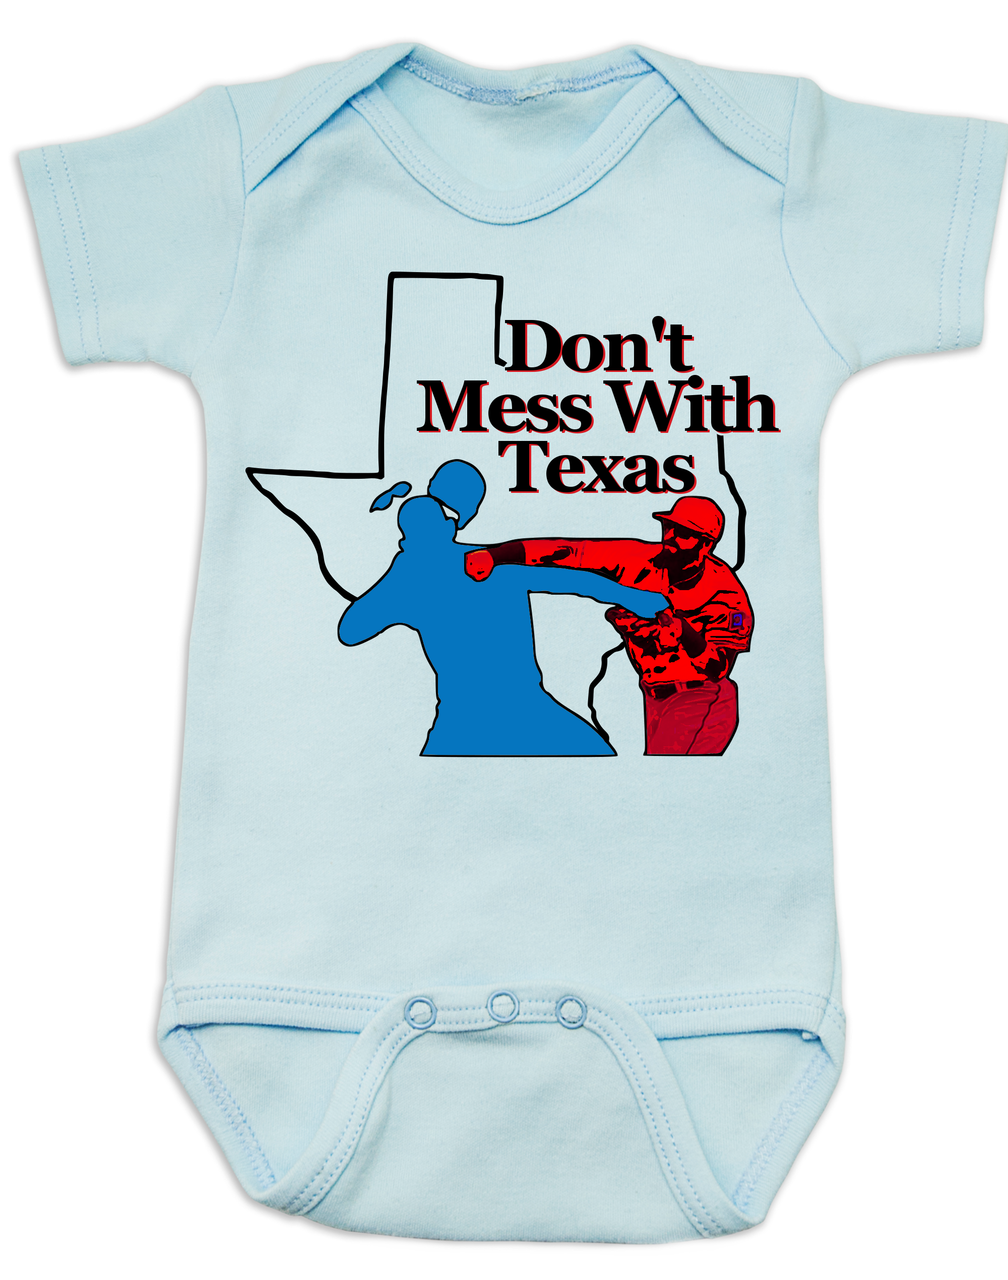 online store f7178 564d8 Don't Mess With Texas Baby Bodysuit